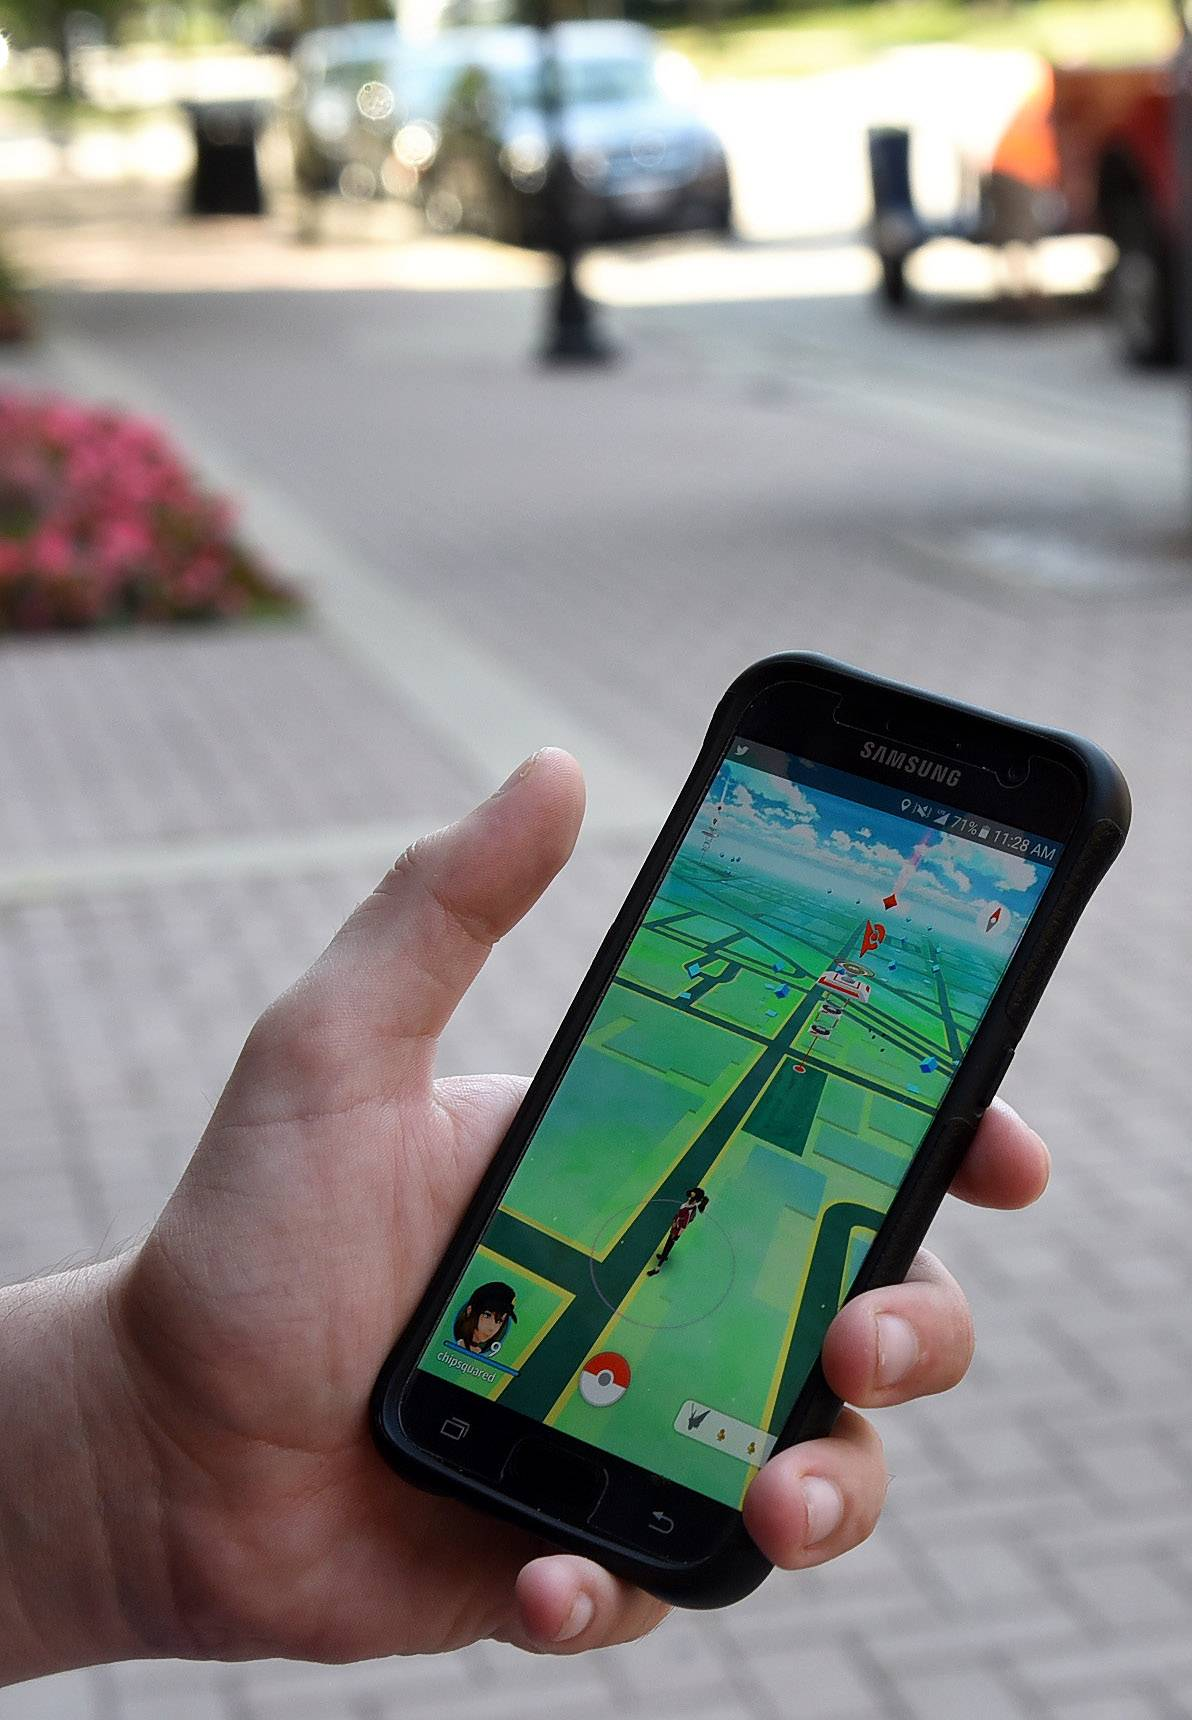 Digital mapping -- the future is Pokemon Go!